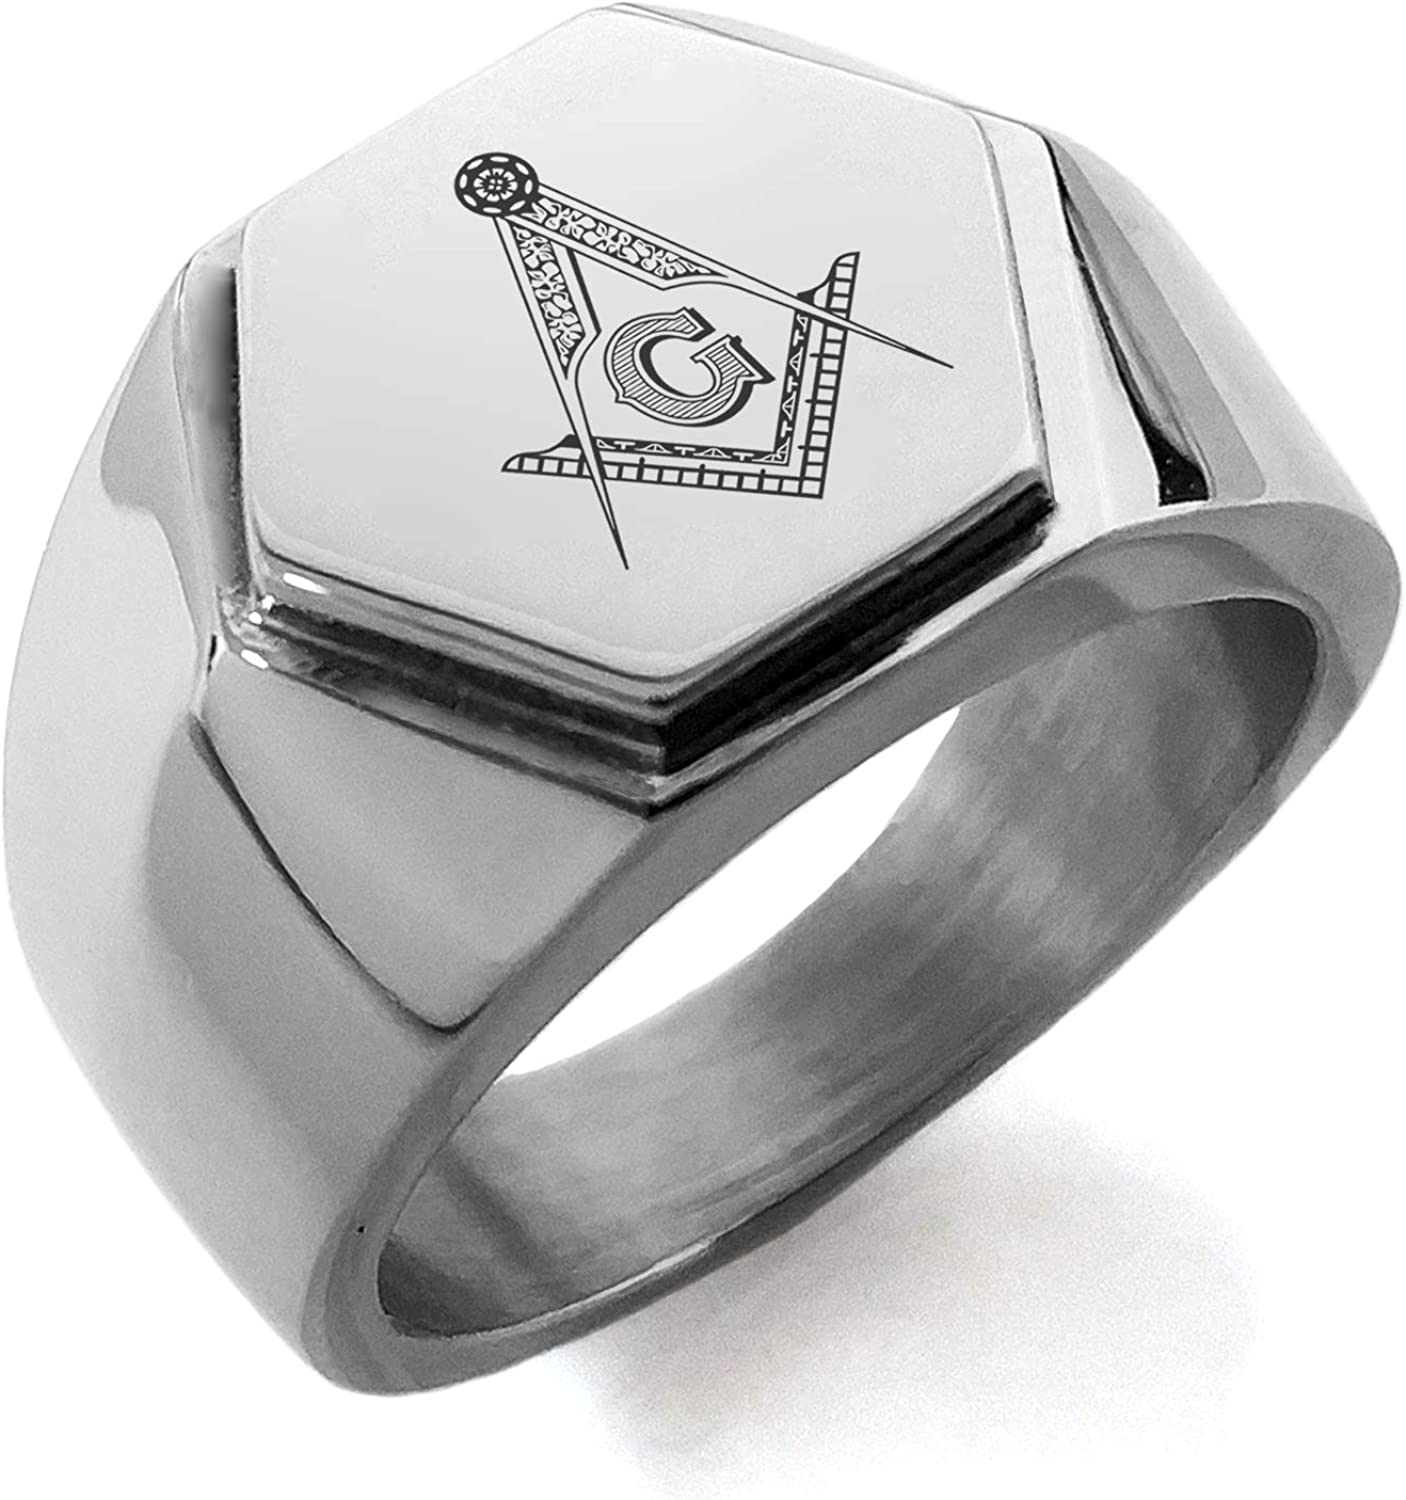 Stainless Steel Freemasons Masonic Compass Hexagon Crest Flat Top Biker Style Polished Ring